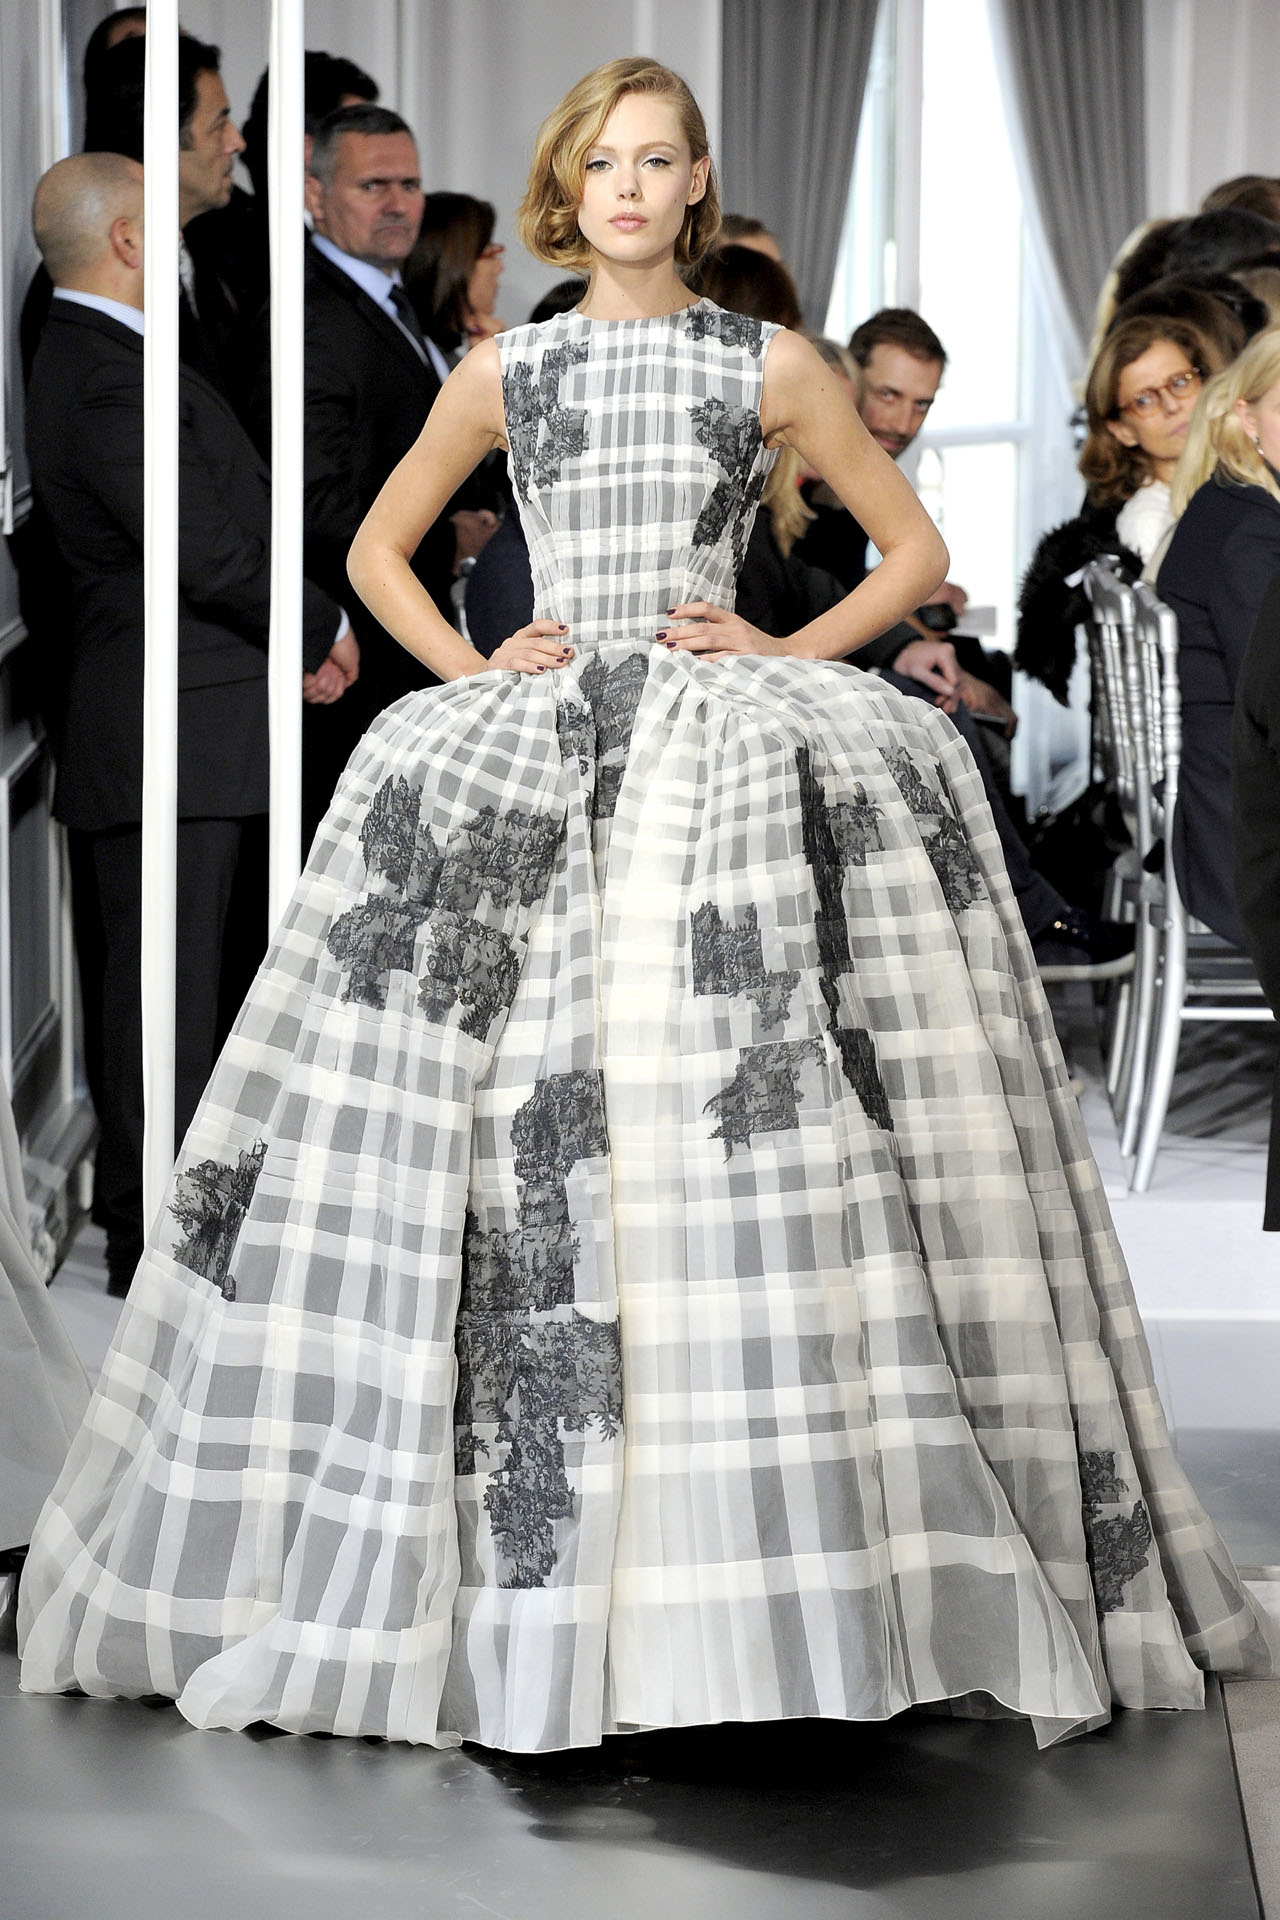 Christian Dior Couture Spring/Summer 2012, Image via Vogue UK